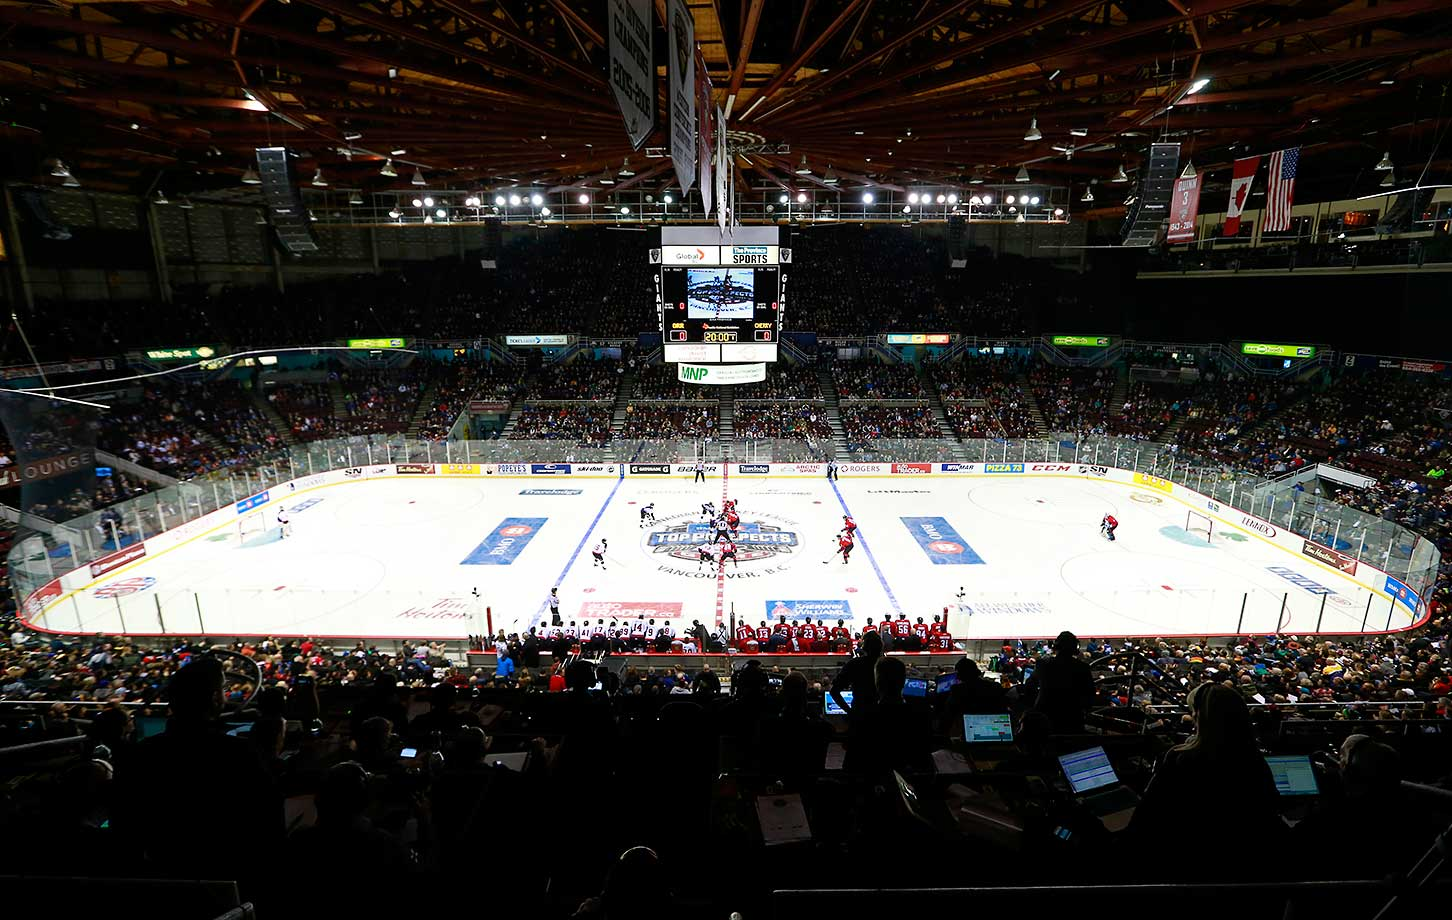 Team Cherry  and Team Orr faceoff at the start of the CHL/NHL Top Prospects Game at Pacific Coliseum in Vancouver.